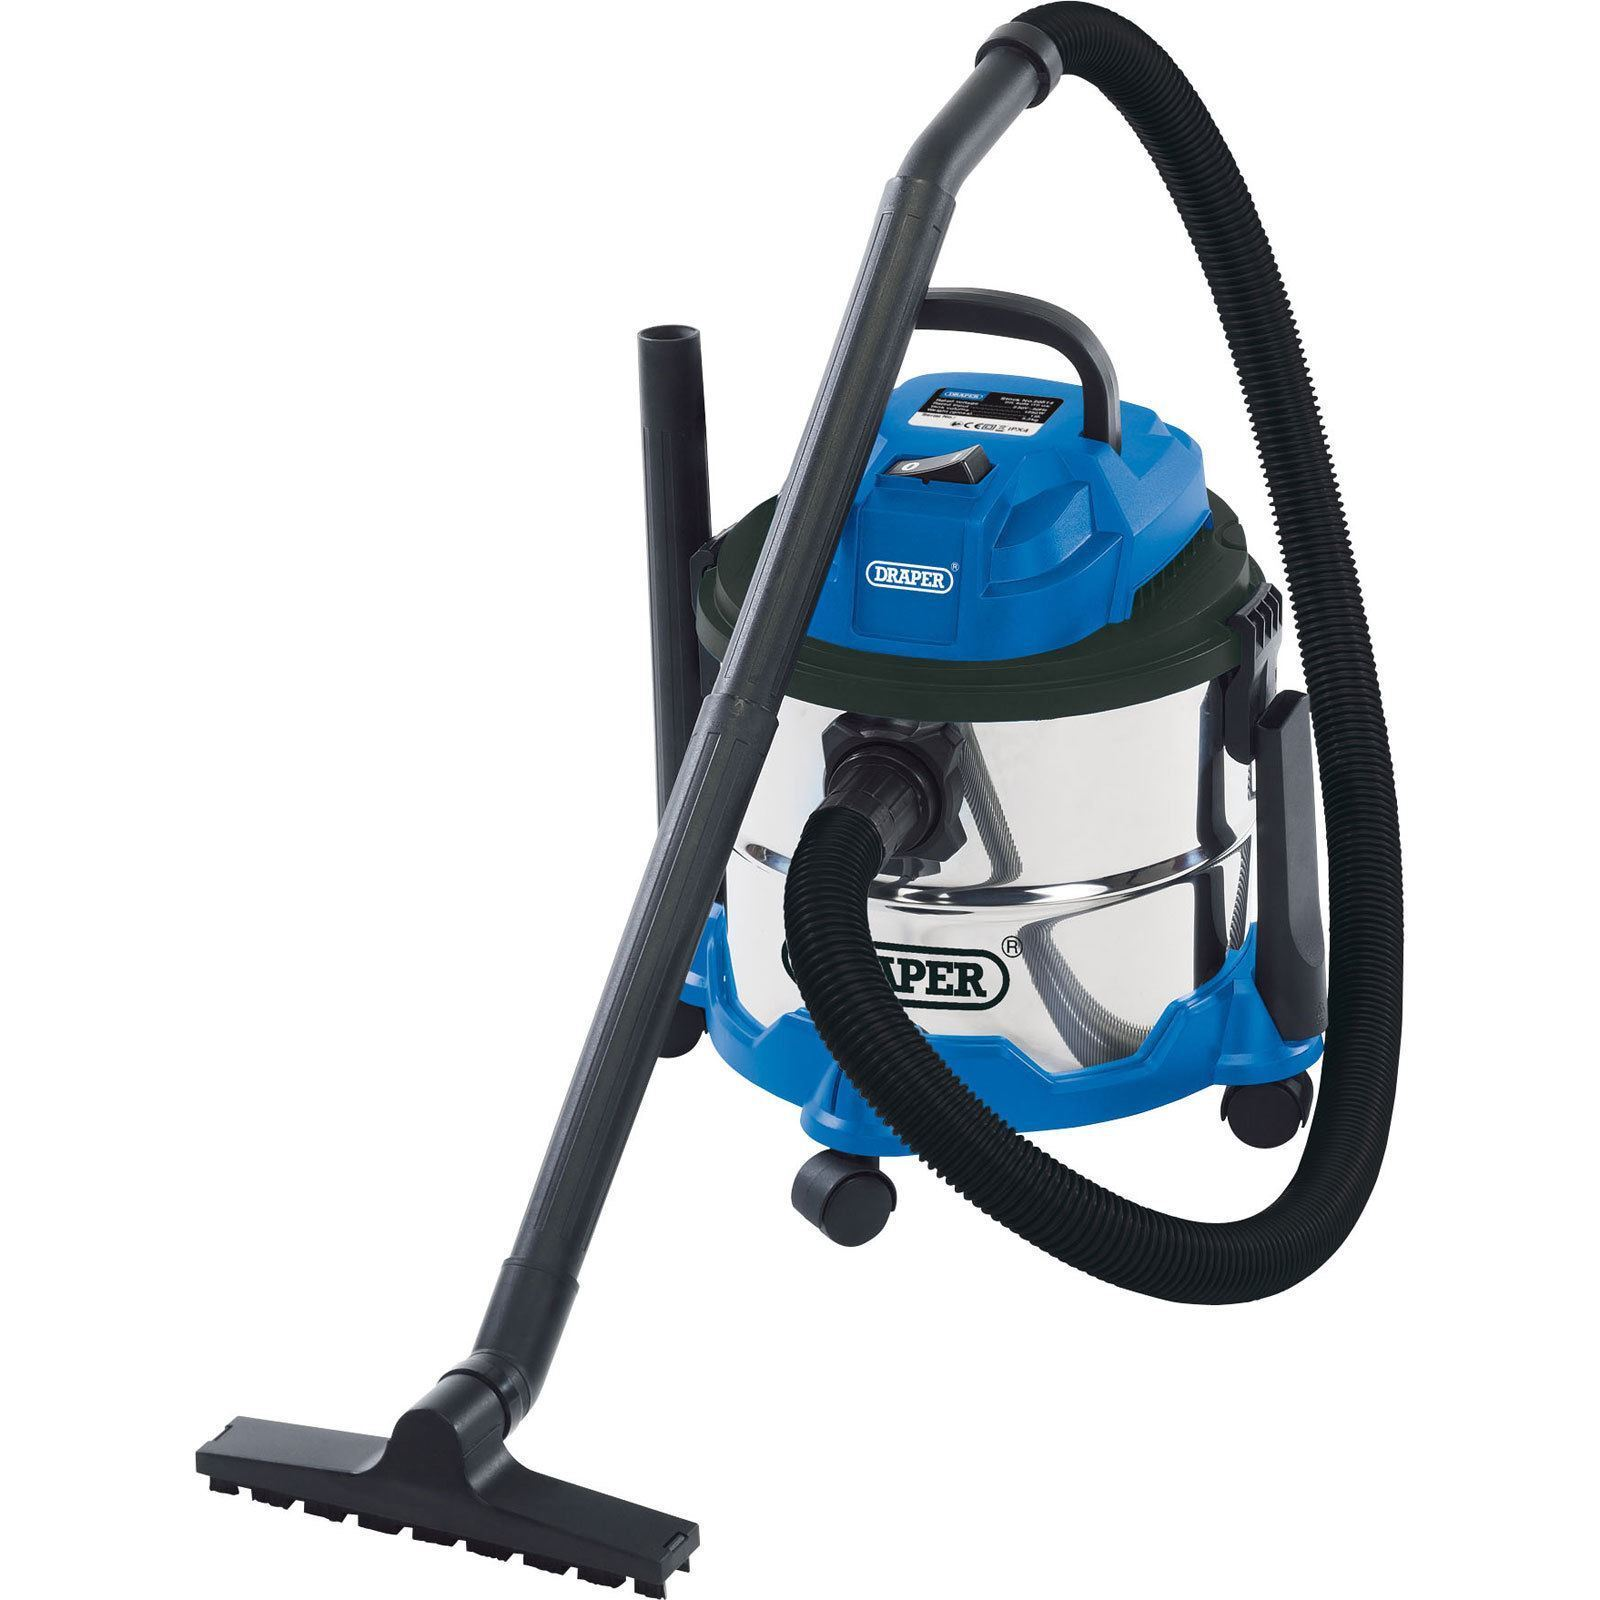 Draper Wet and Dry Vacuum Cleaner With Stainless Steel Tank 15L 230V 20514